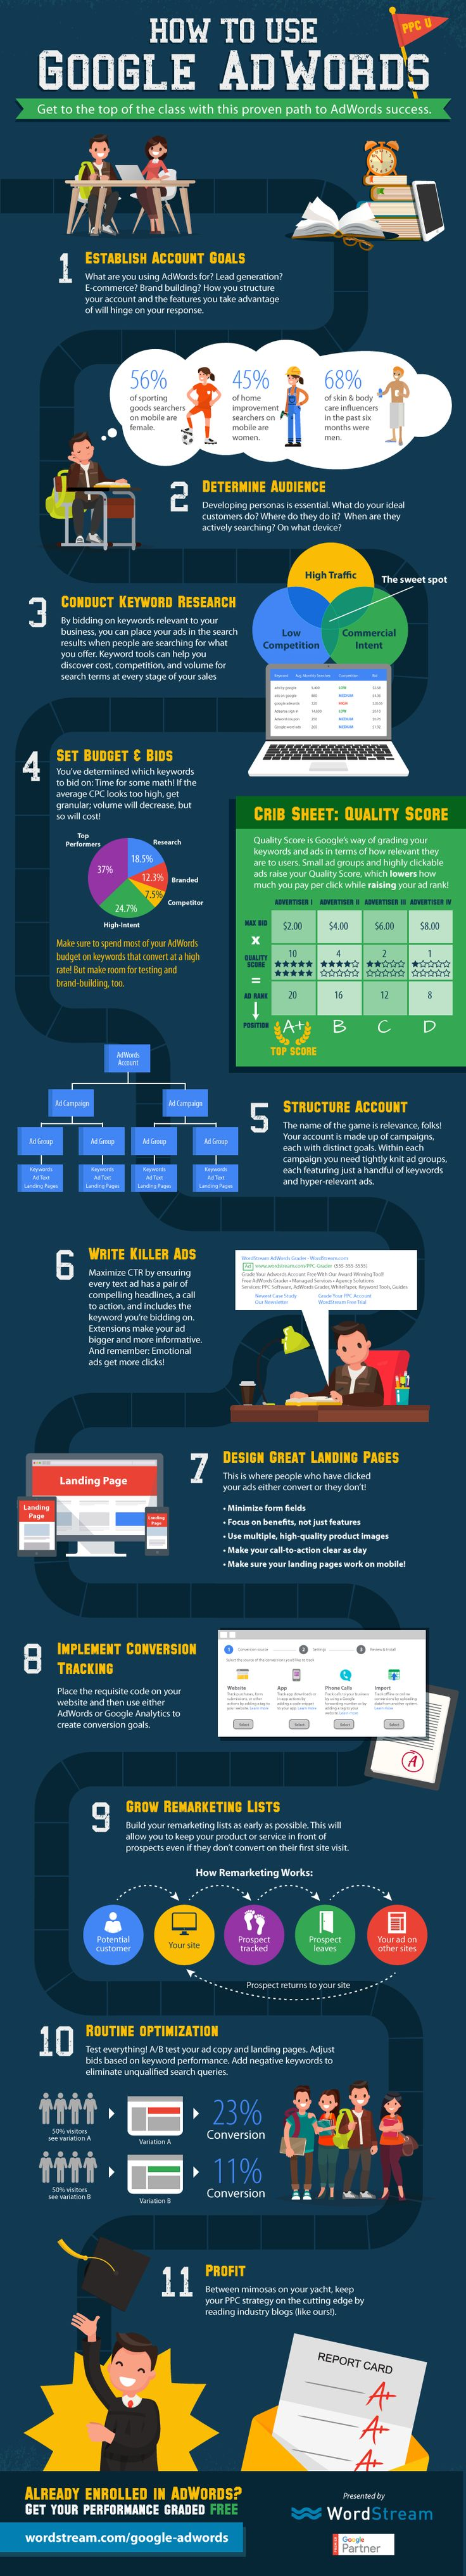 How to Use Google AdWords #Infographic #HowTo #Google